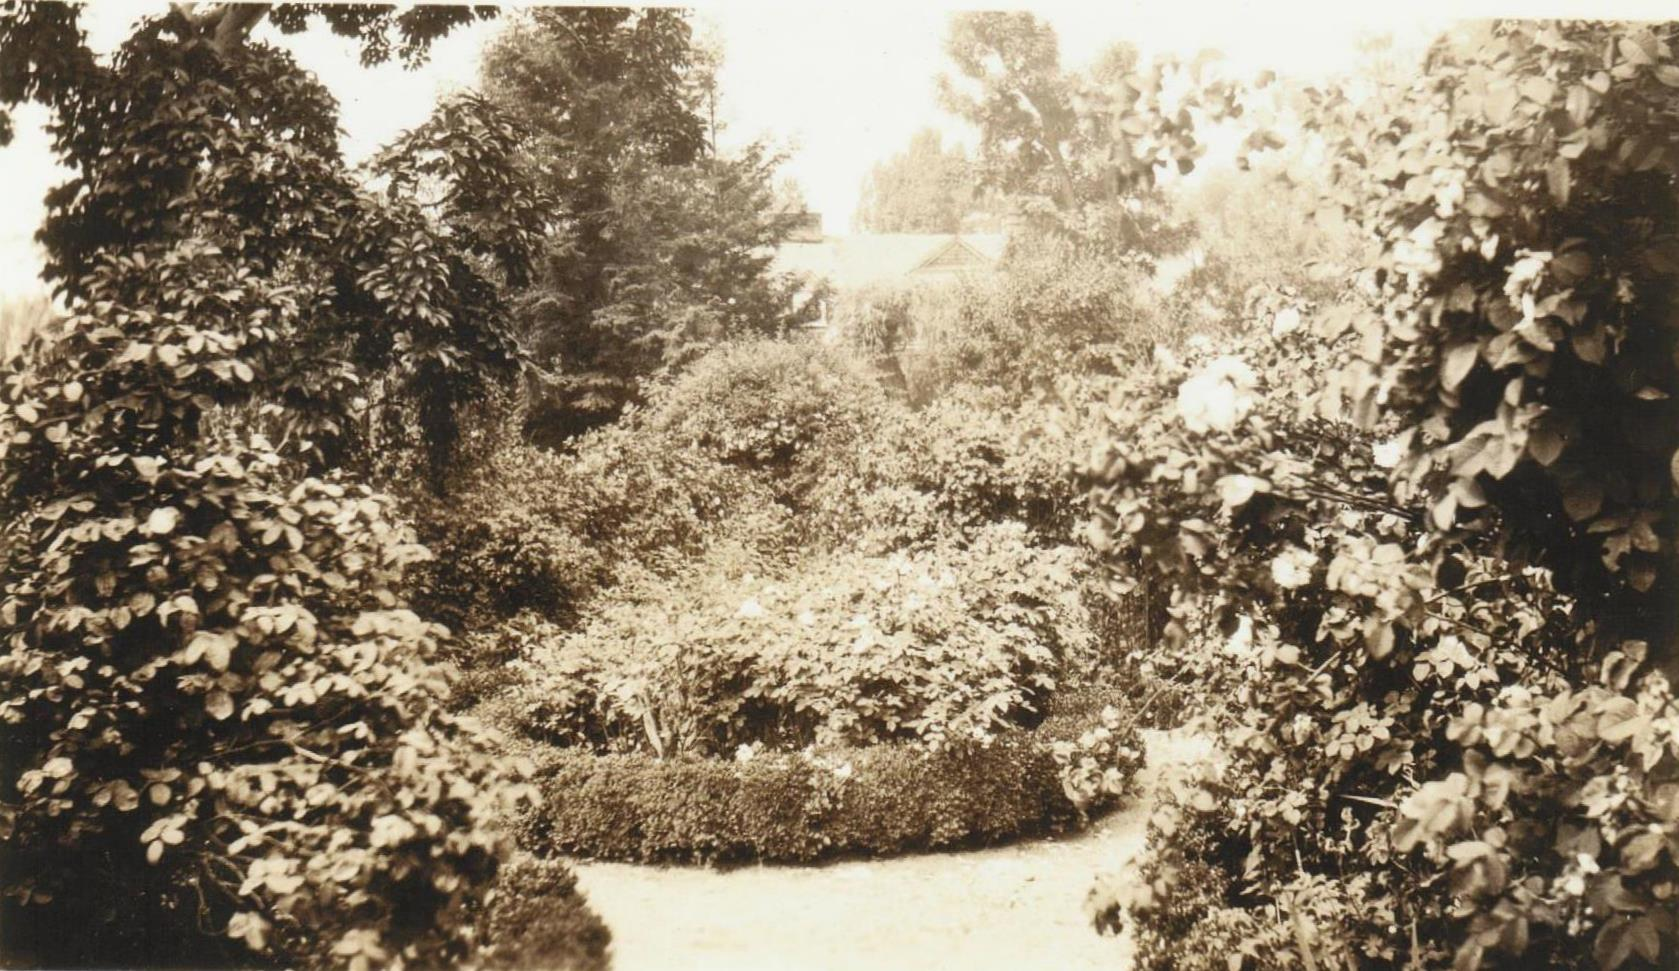 A 1915 photo of the central medallion in the garden, looking quite overgrown.